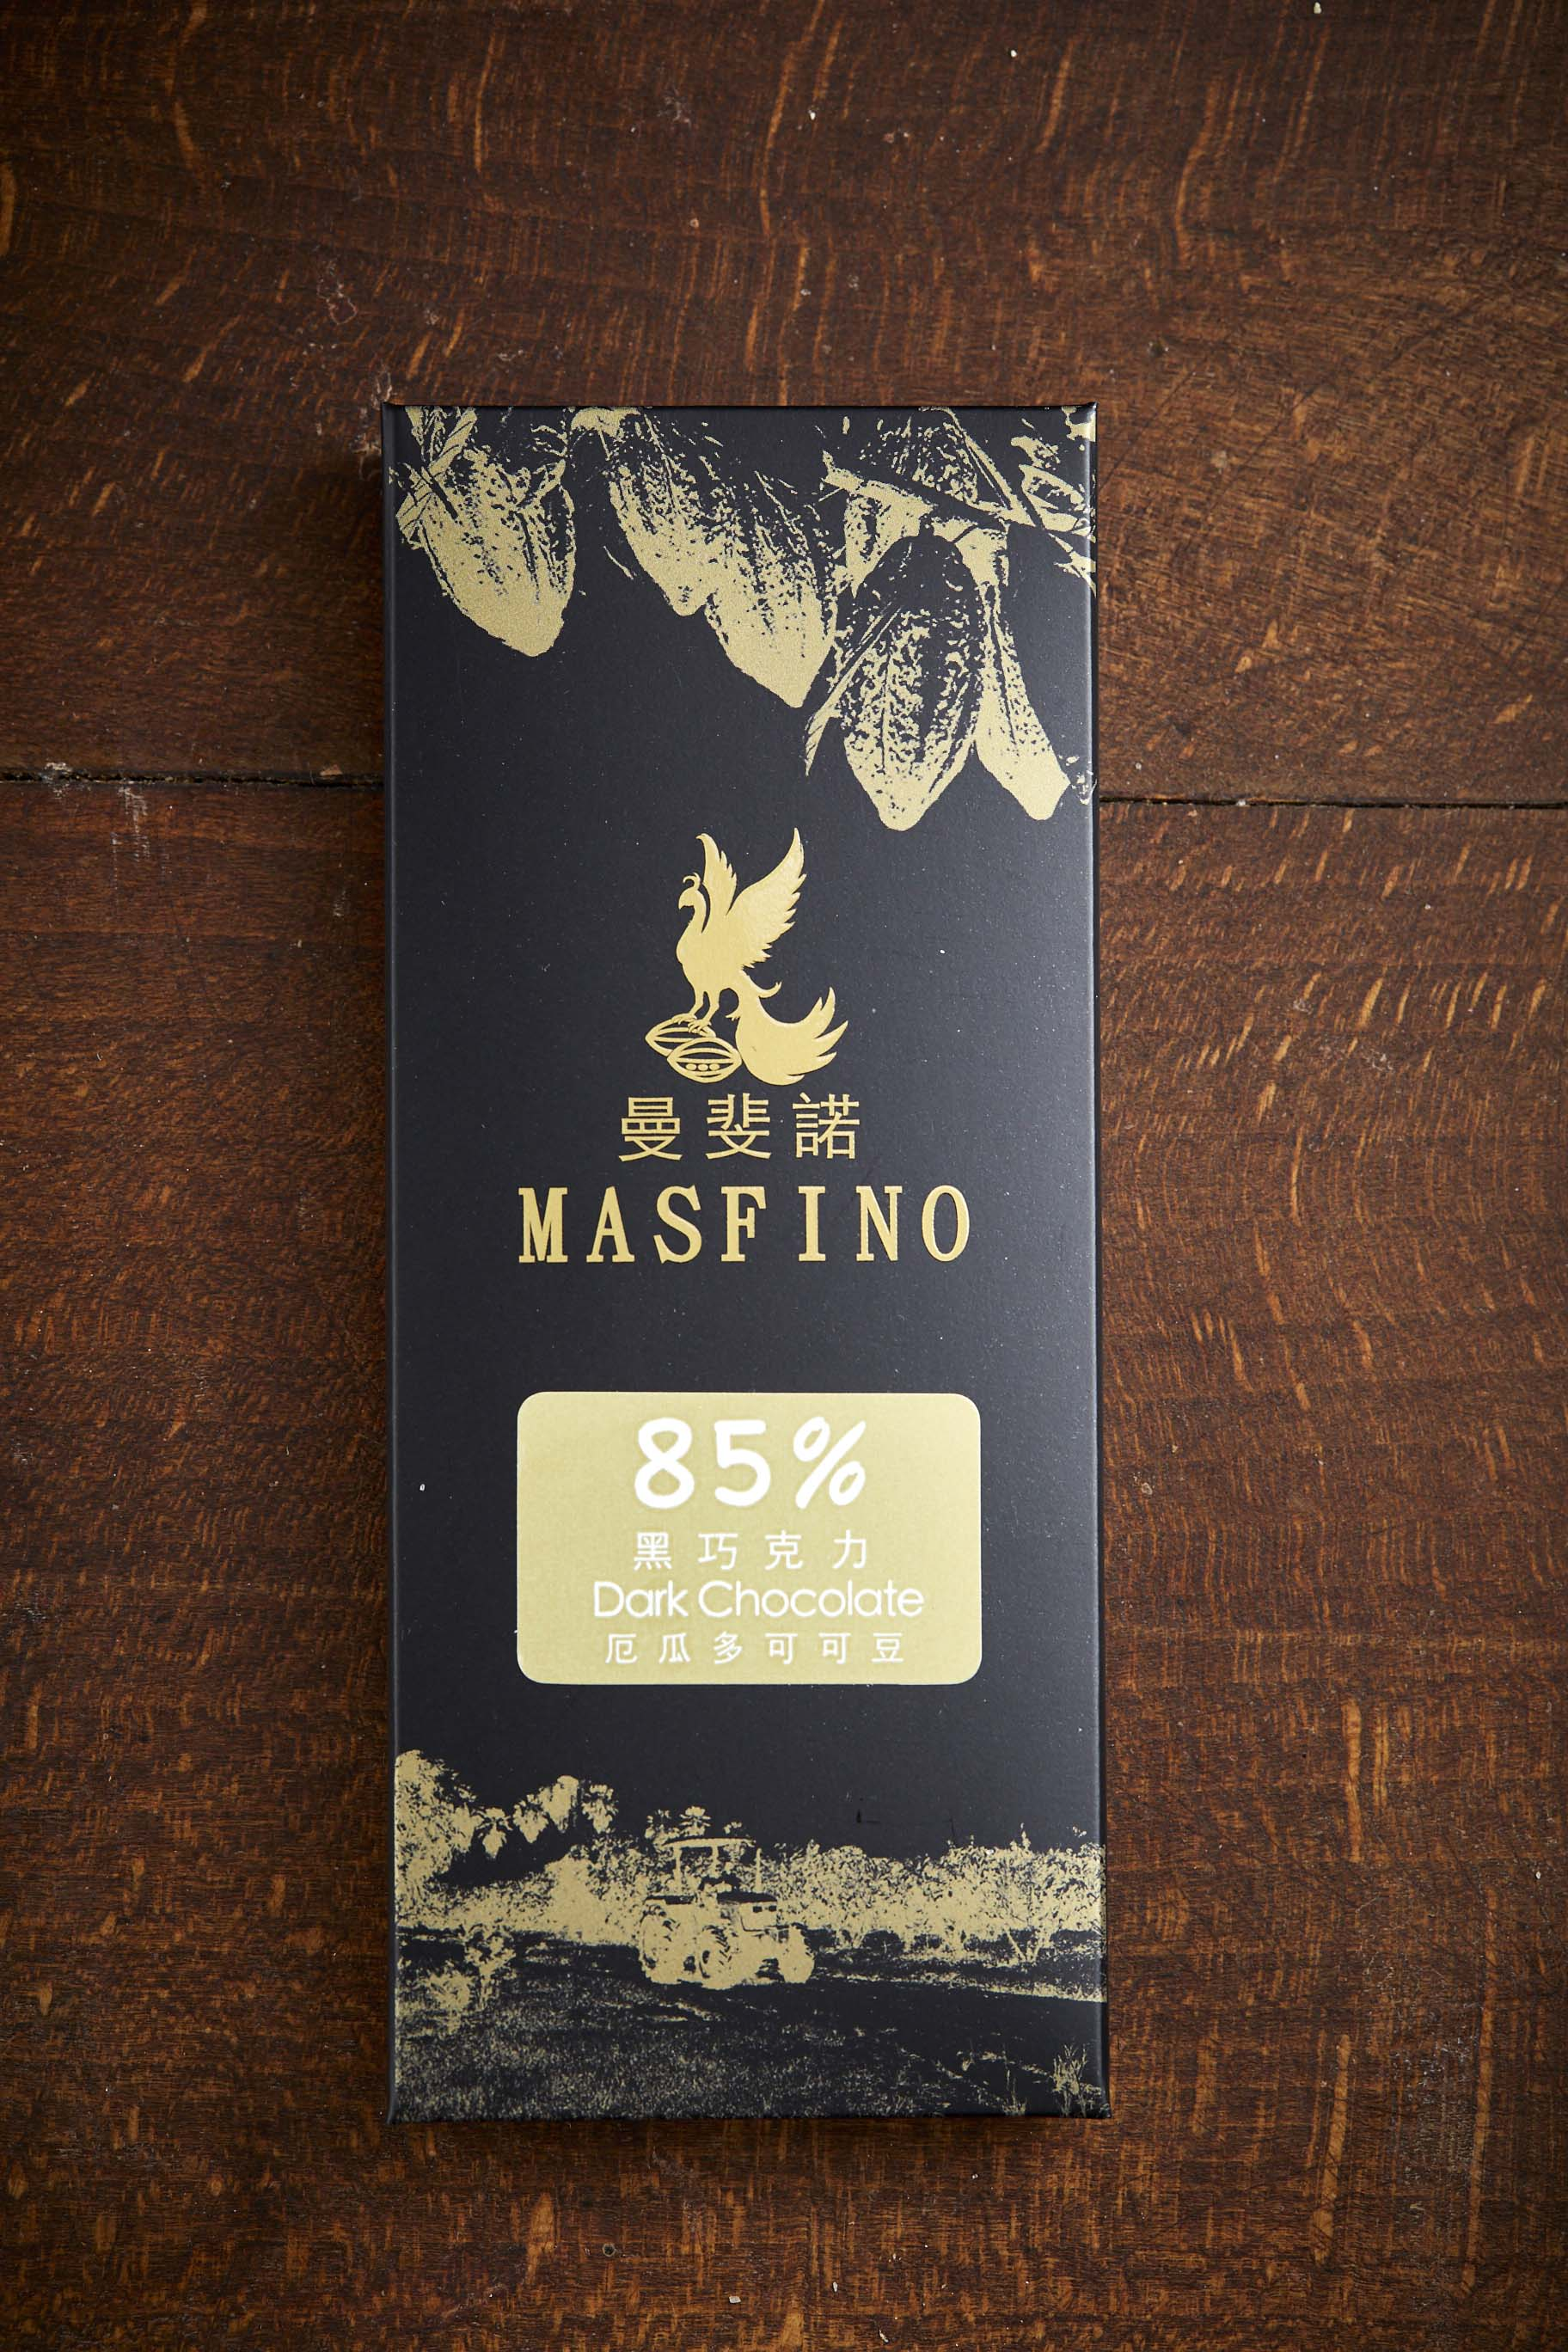 85% Dark Chocolate Bar   For people who prefer bittersweet delights, try our 85% Dark Chocolate bar made with organic sugar.  Ingredients: Ecuadorian Cacao, Organic Sugar, Cacao Butter   Shop Now!